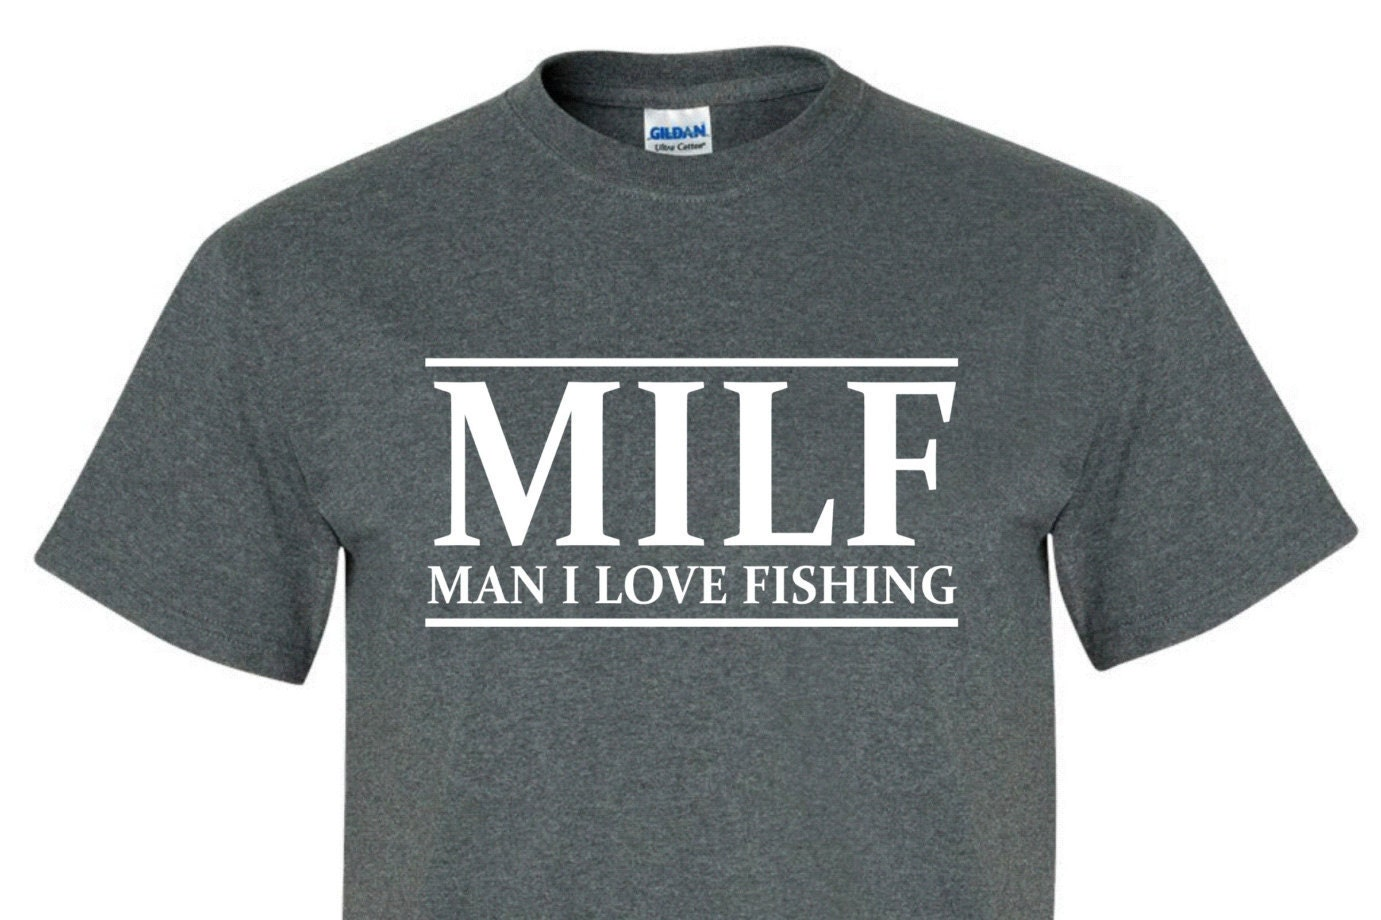 Milf love fishing tee shirt great as a gift for men by for Man i love fishing